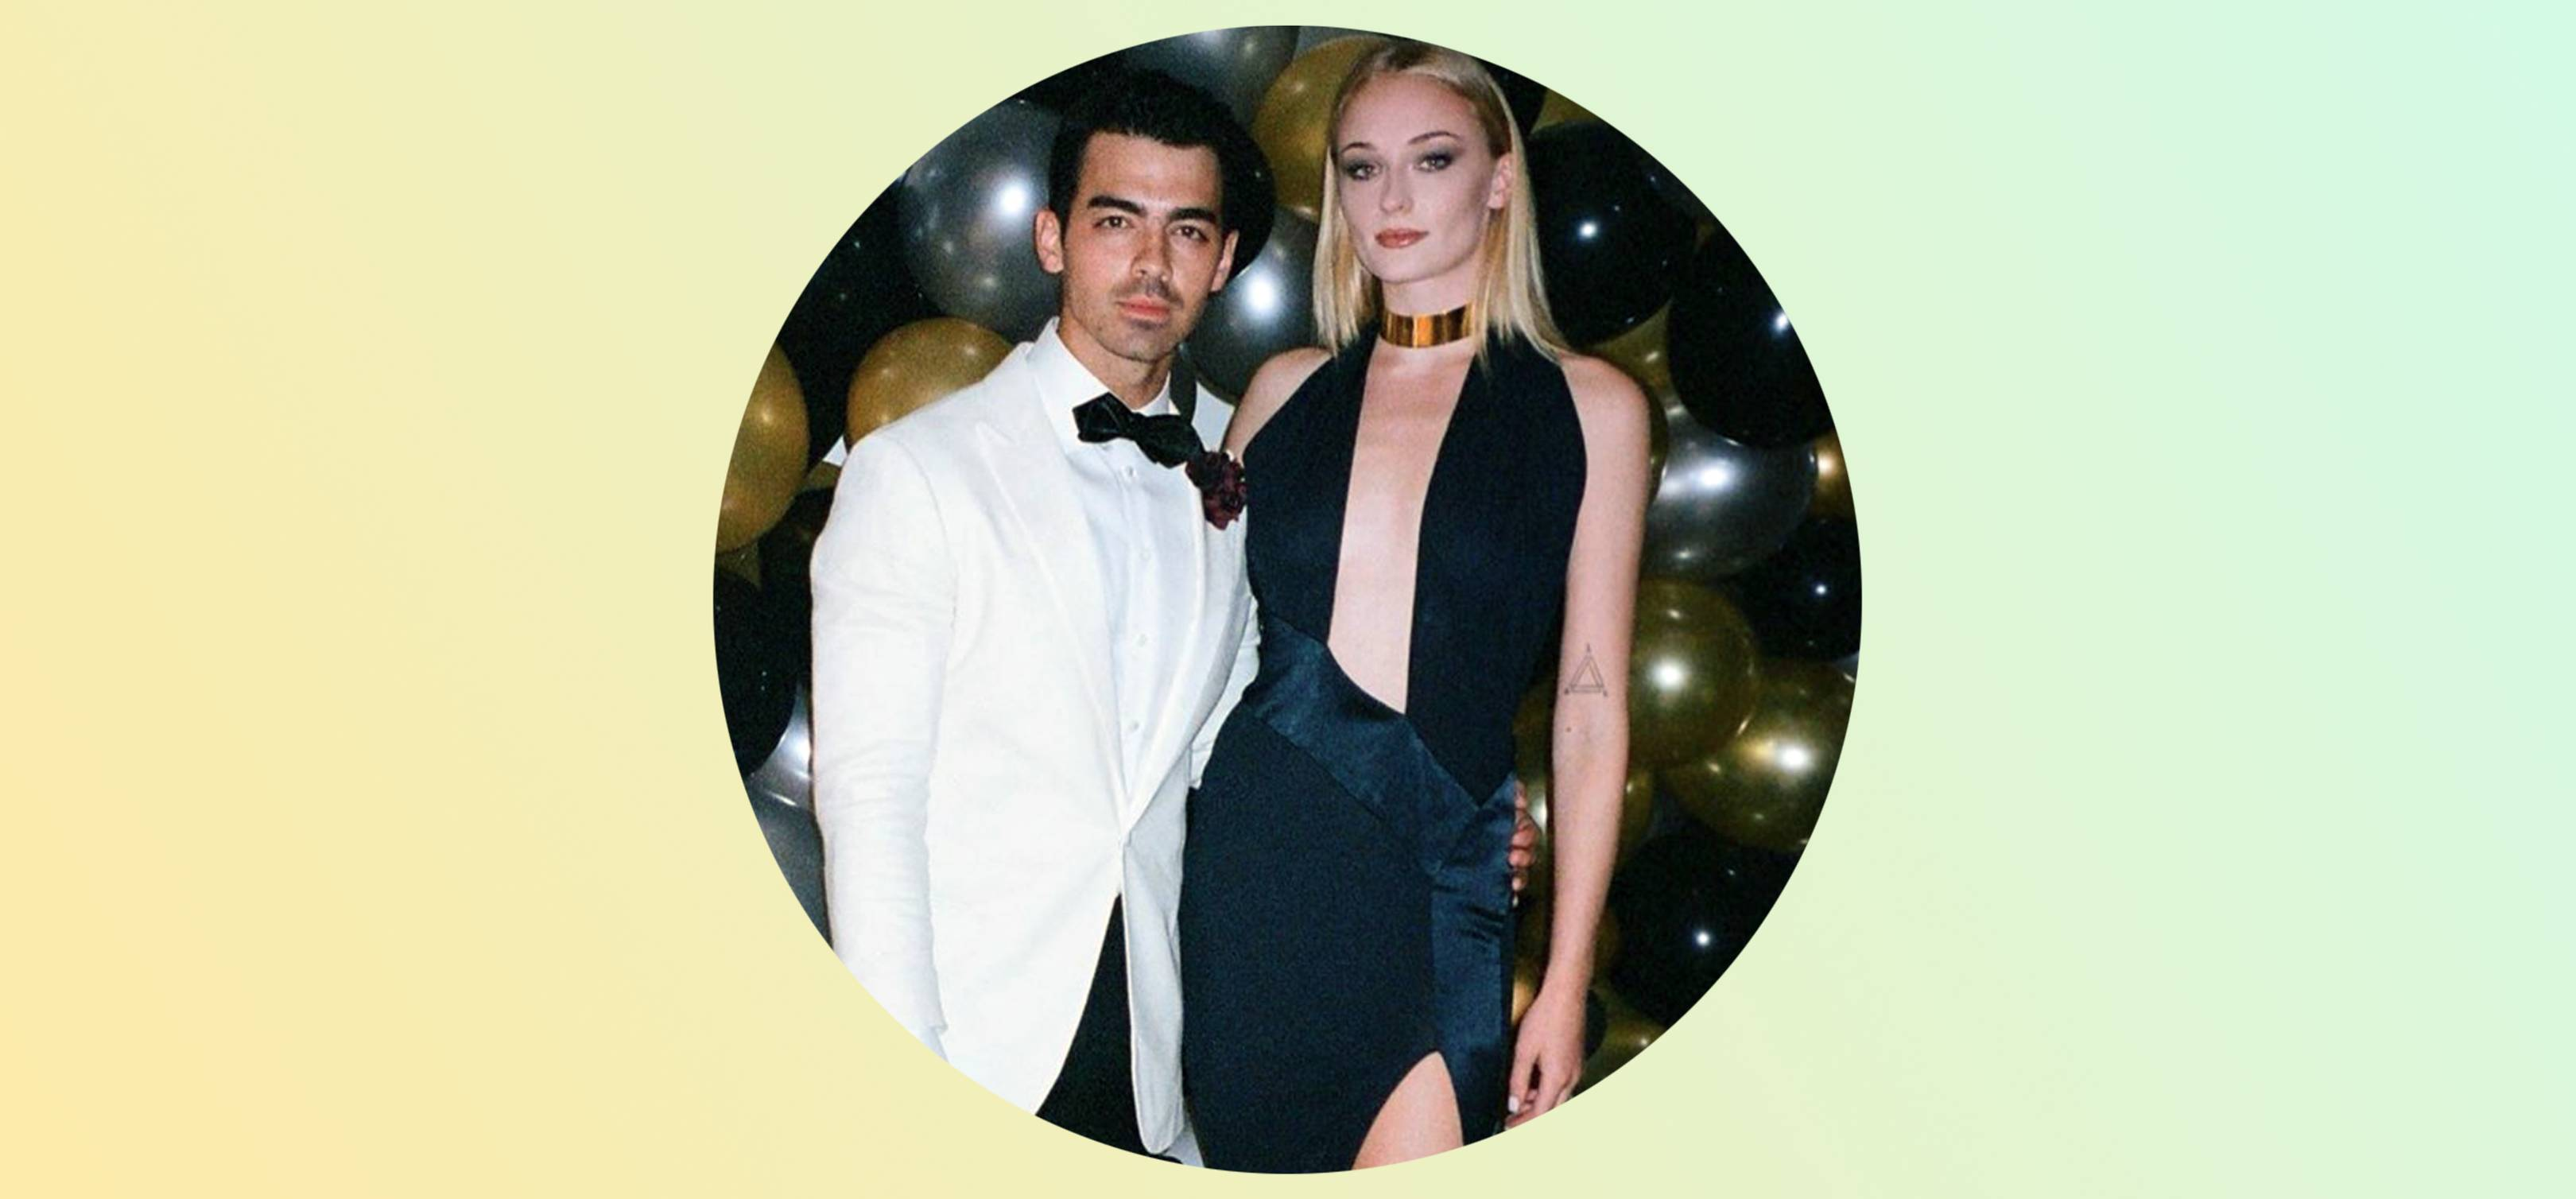 Joe Jonas had a 007-themed party and Sophie Turner looked ah-mazing